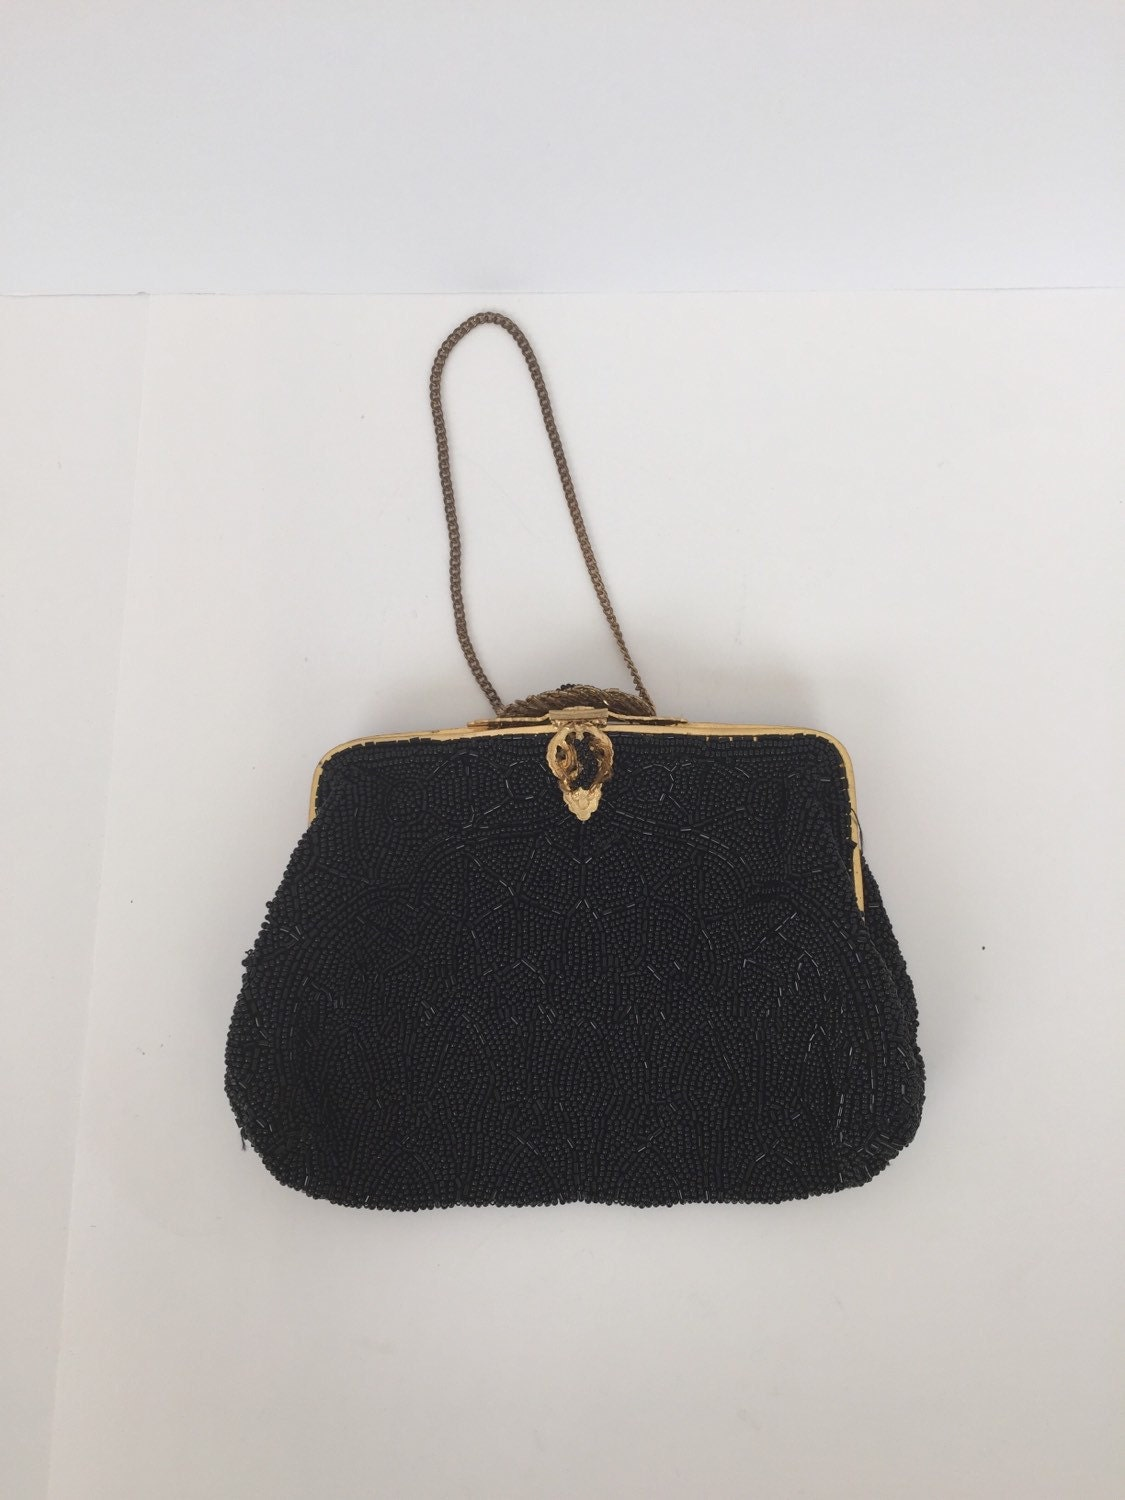 Think just Evening bags vintage